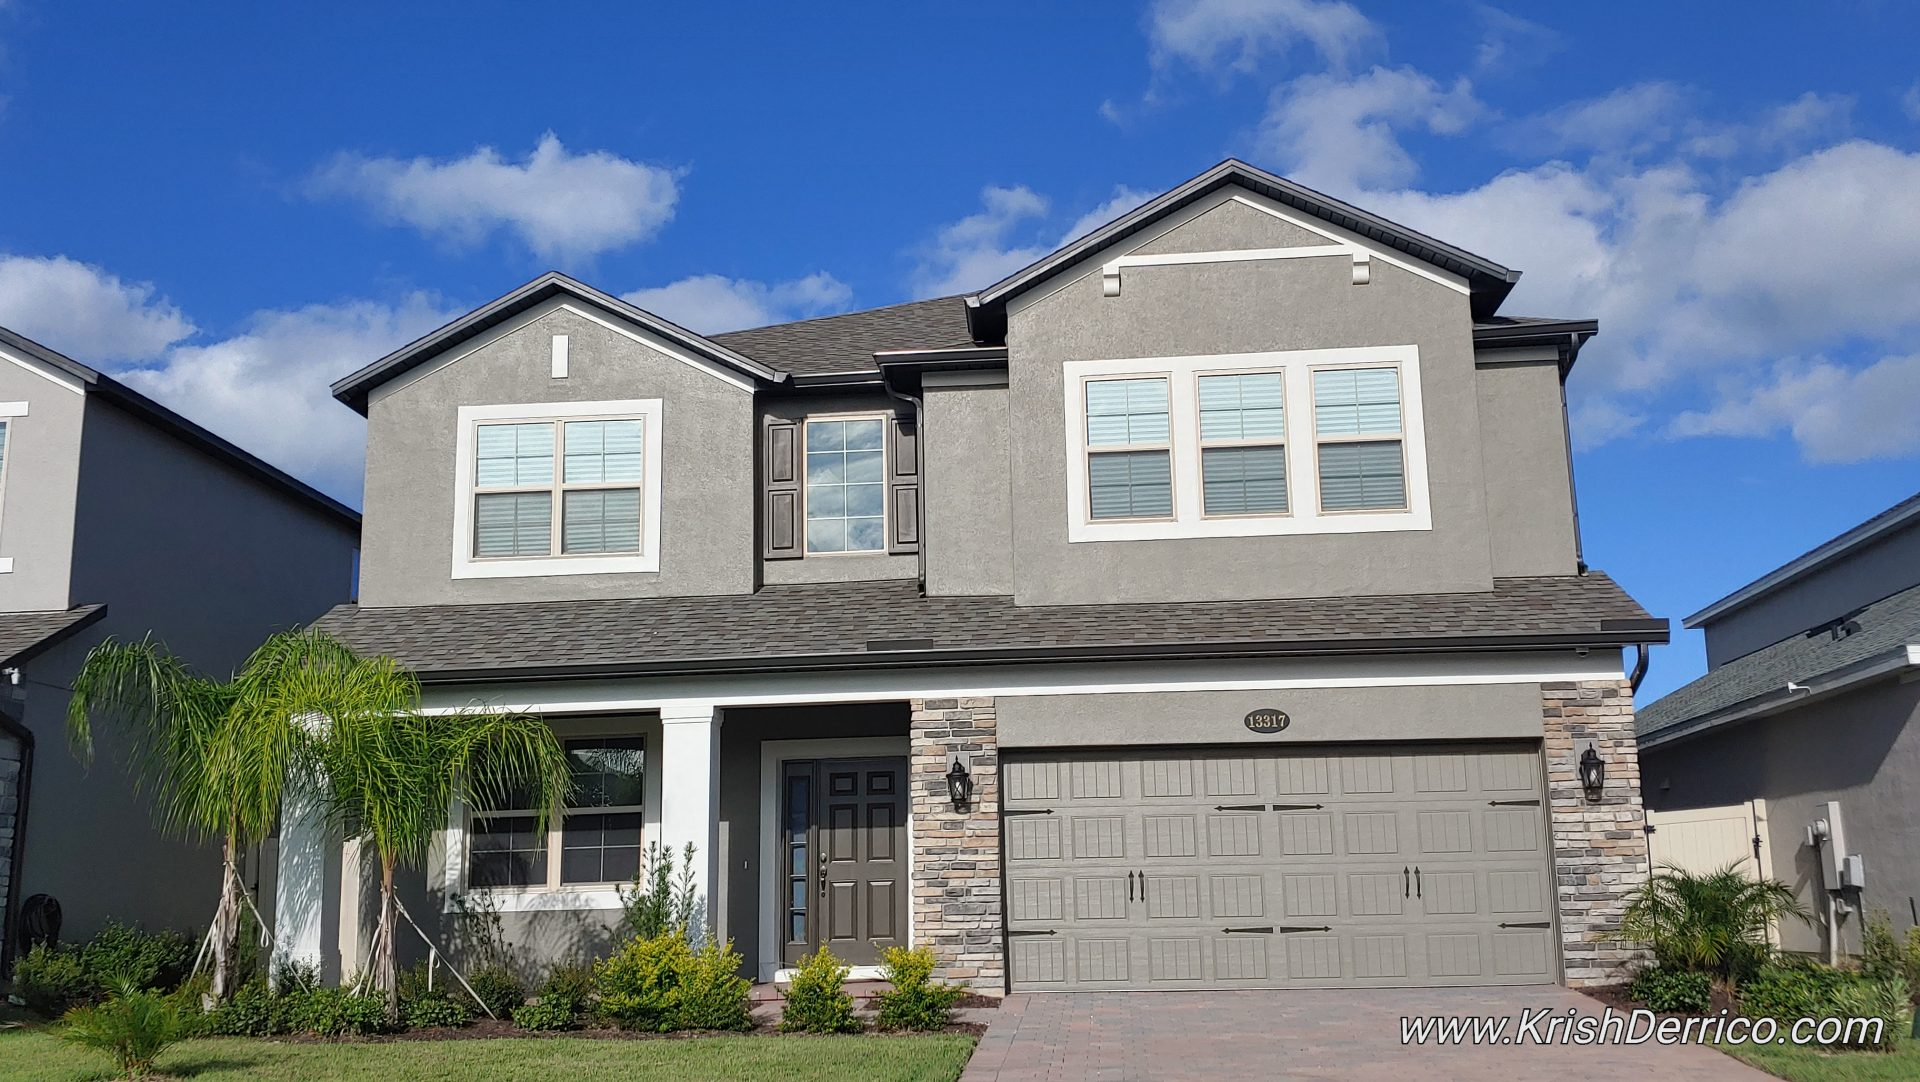 new construction homes in johns lake landing clemront, fl